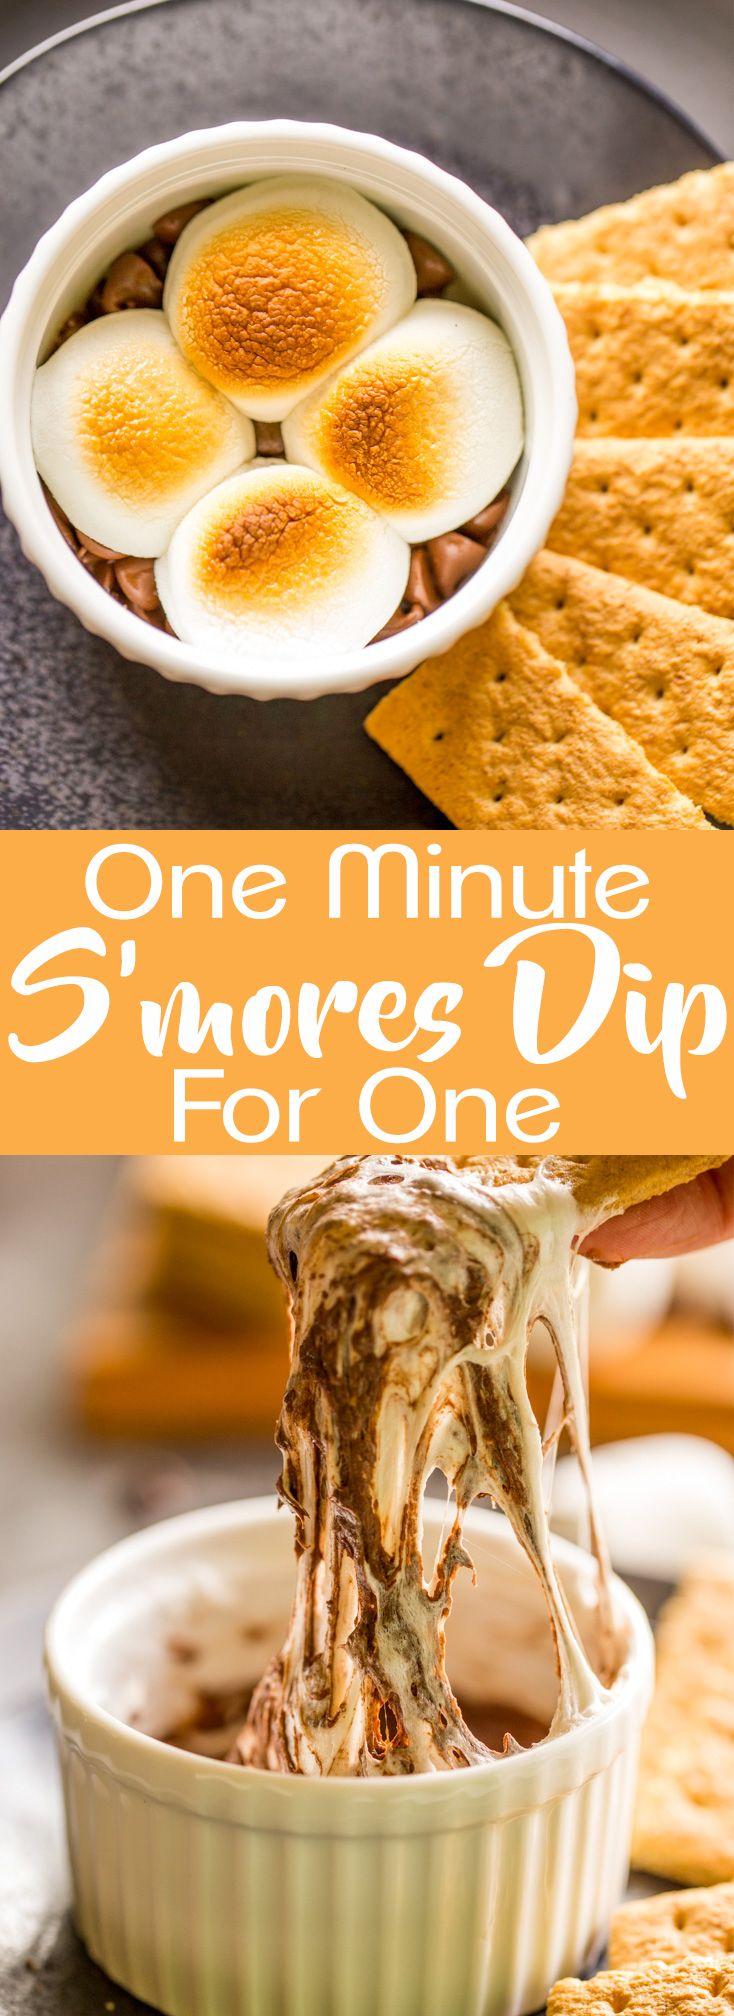 This One Minute S'mores Dip for One is perfect for a late night sweet tooth. Desserts for One | Microwave Desserts | Quick and Easy Desserts | Microwave S'mores | Quick Treats | Chocolate and Marshmallow Dessert